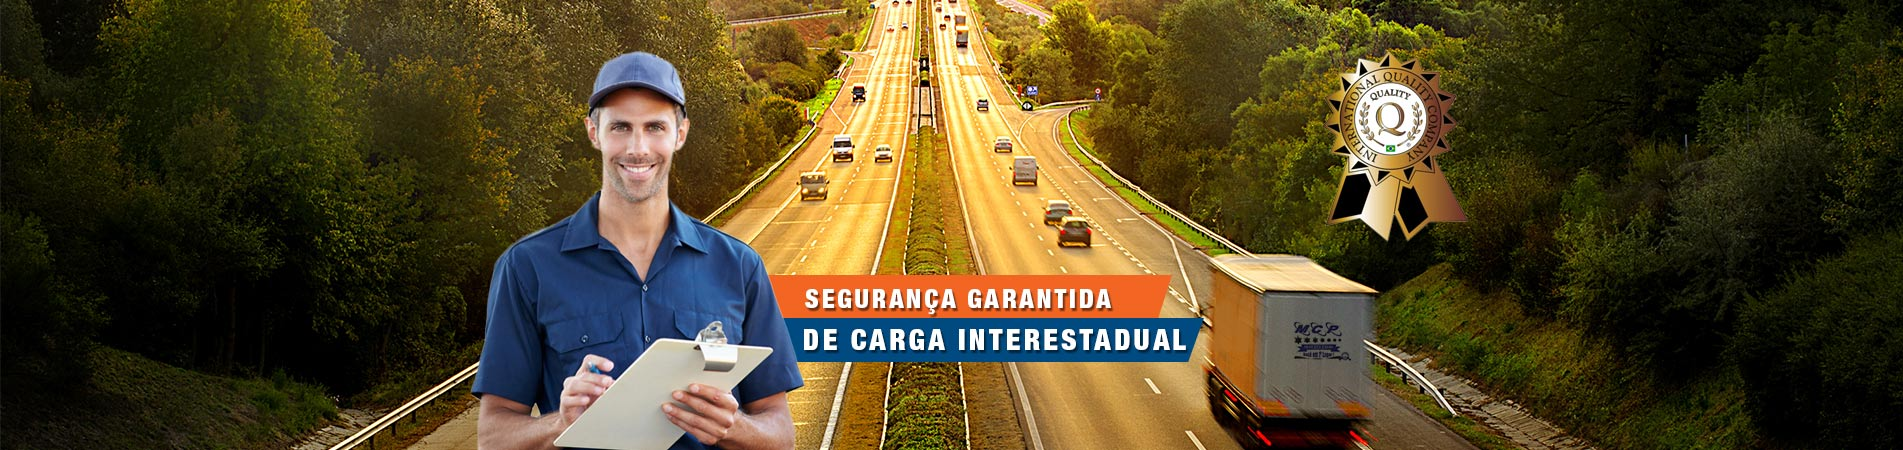 banner-carga-interestadual